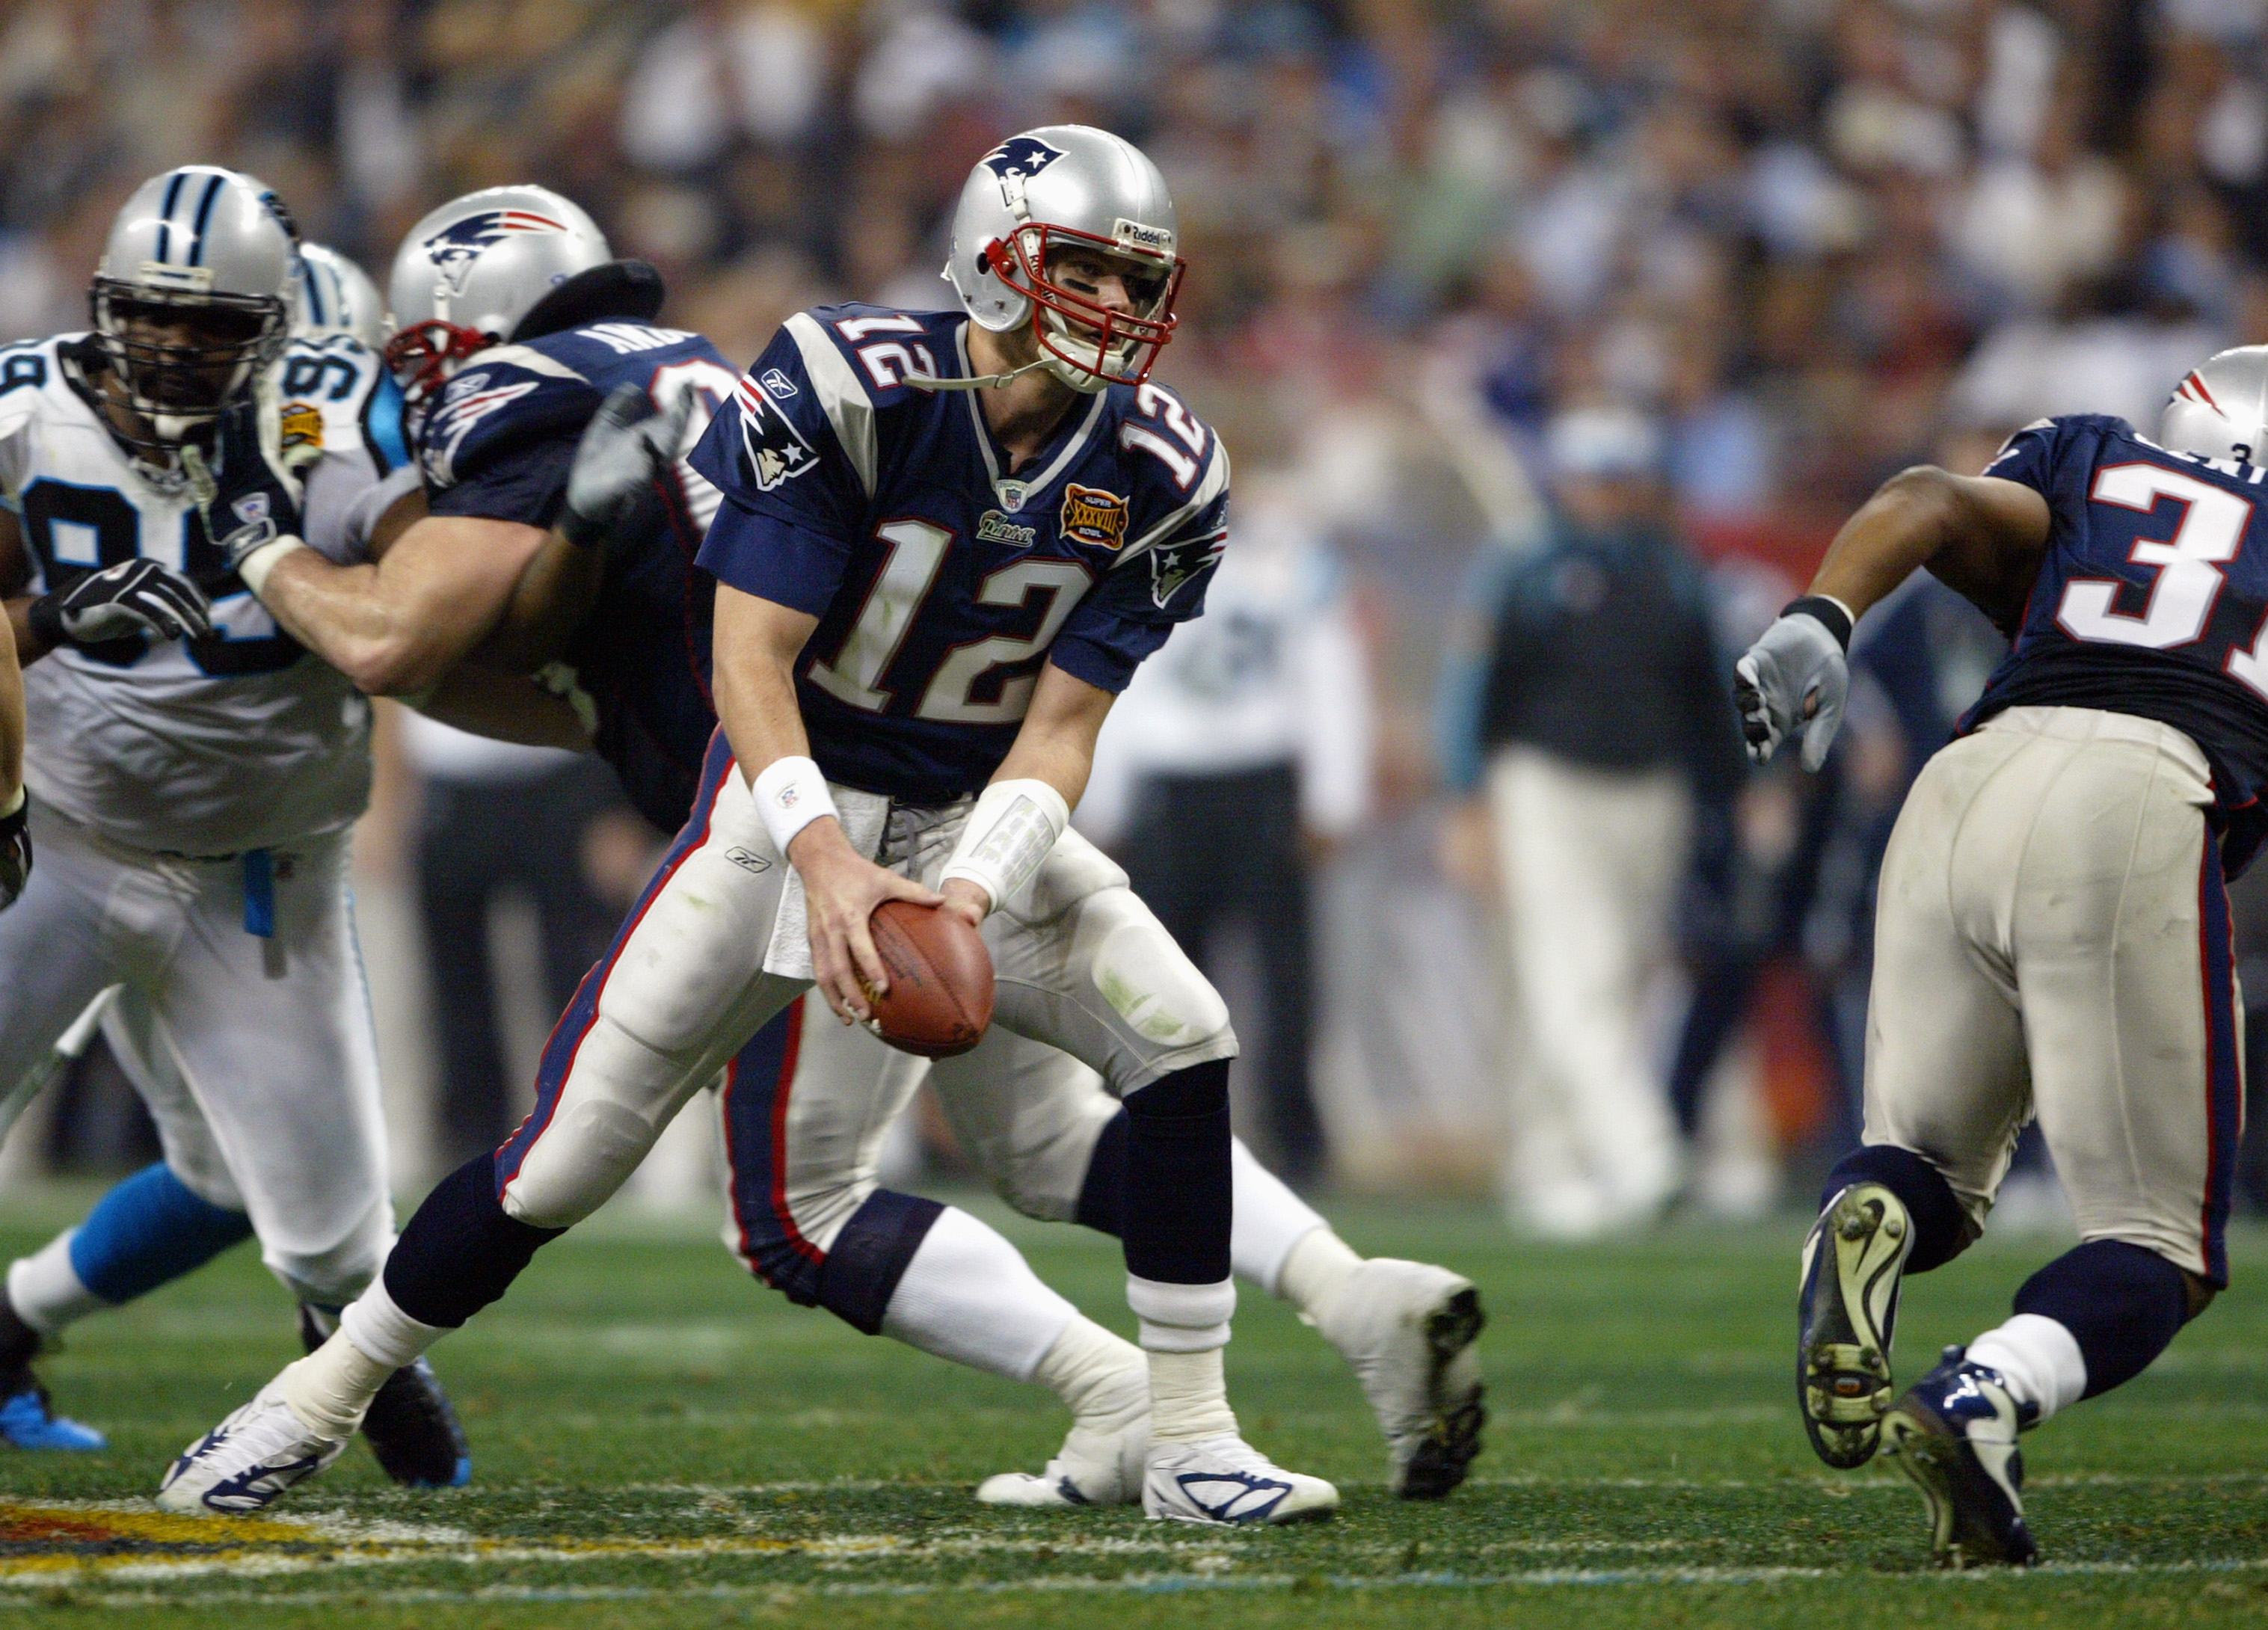 HOUSTON - FEBRUARY 1:  Quarterback Tom Brady #12 of the New England Patriots looks to toss the ball to a running back against the Carolina Panthers during Super Bowl XXXVIII at Reliant Stadium on February 1, 2004 in Houston, Texas.  The Patriots defeated